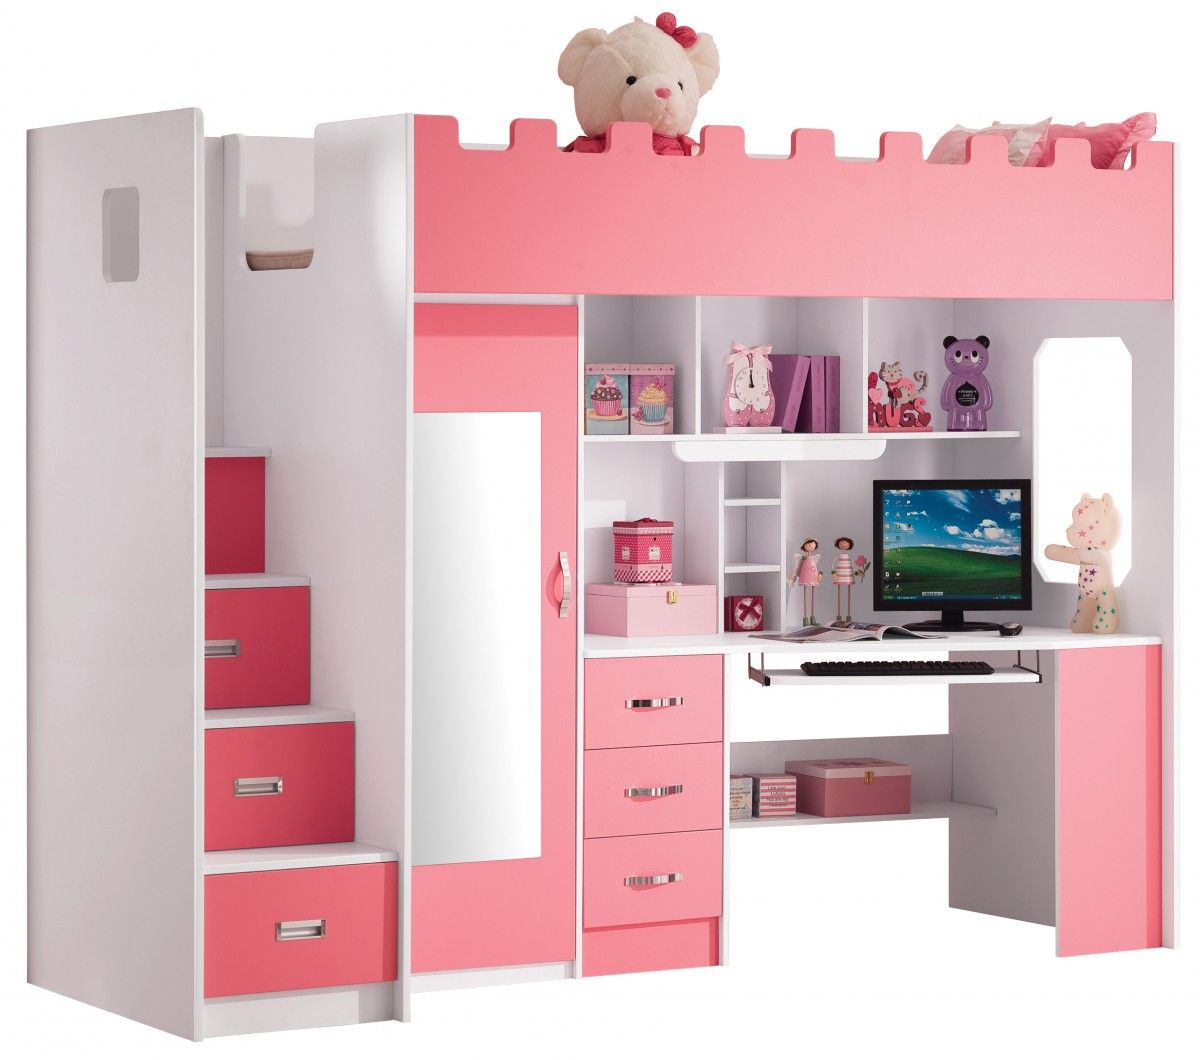 chambre enfant lit multifonction rose pas cher deco int pinterest. Black Bedroom Furniture Sets. Home Design Ideas